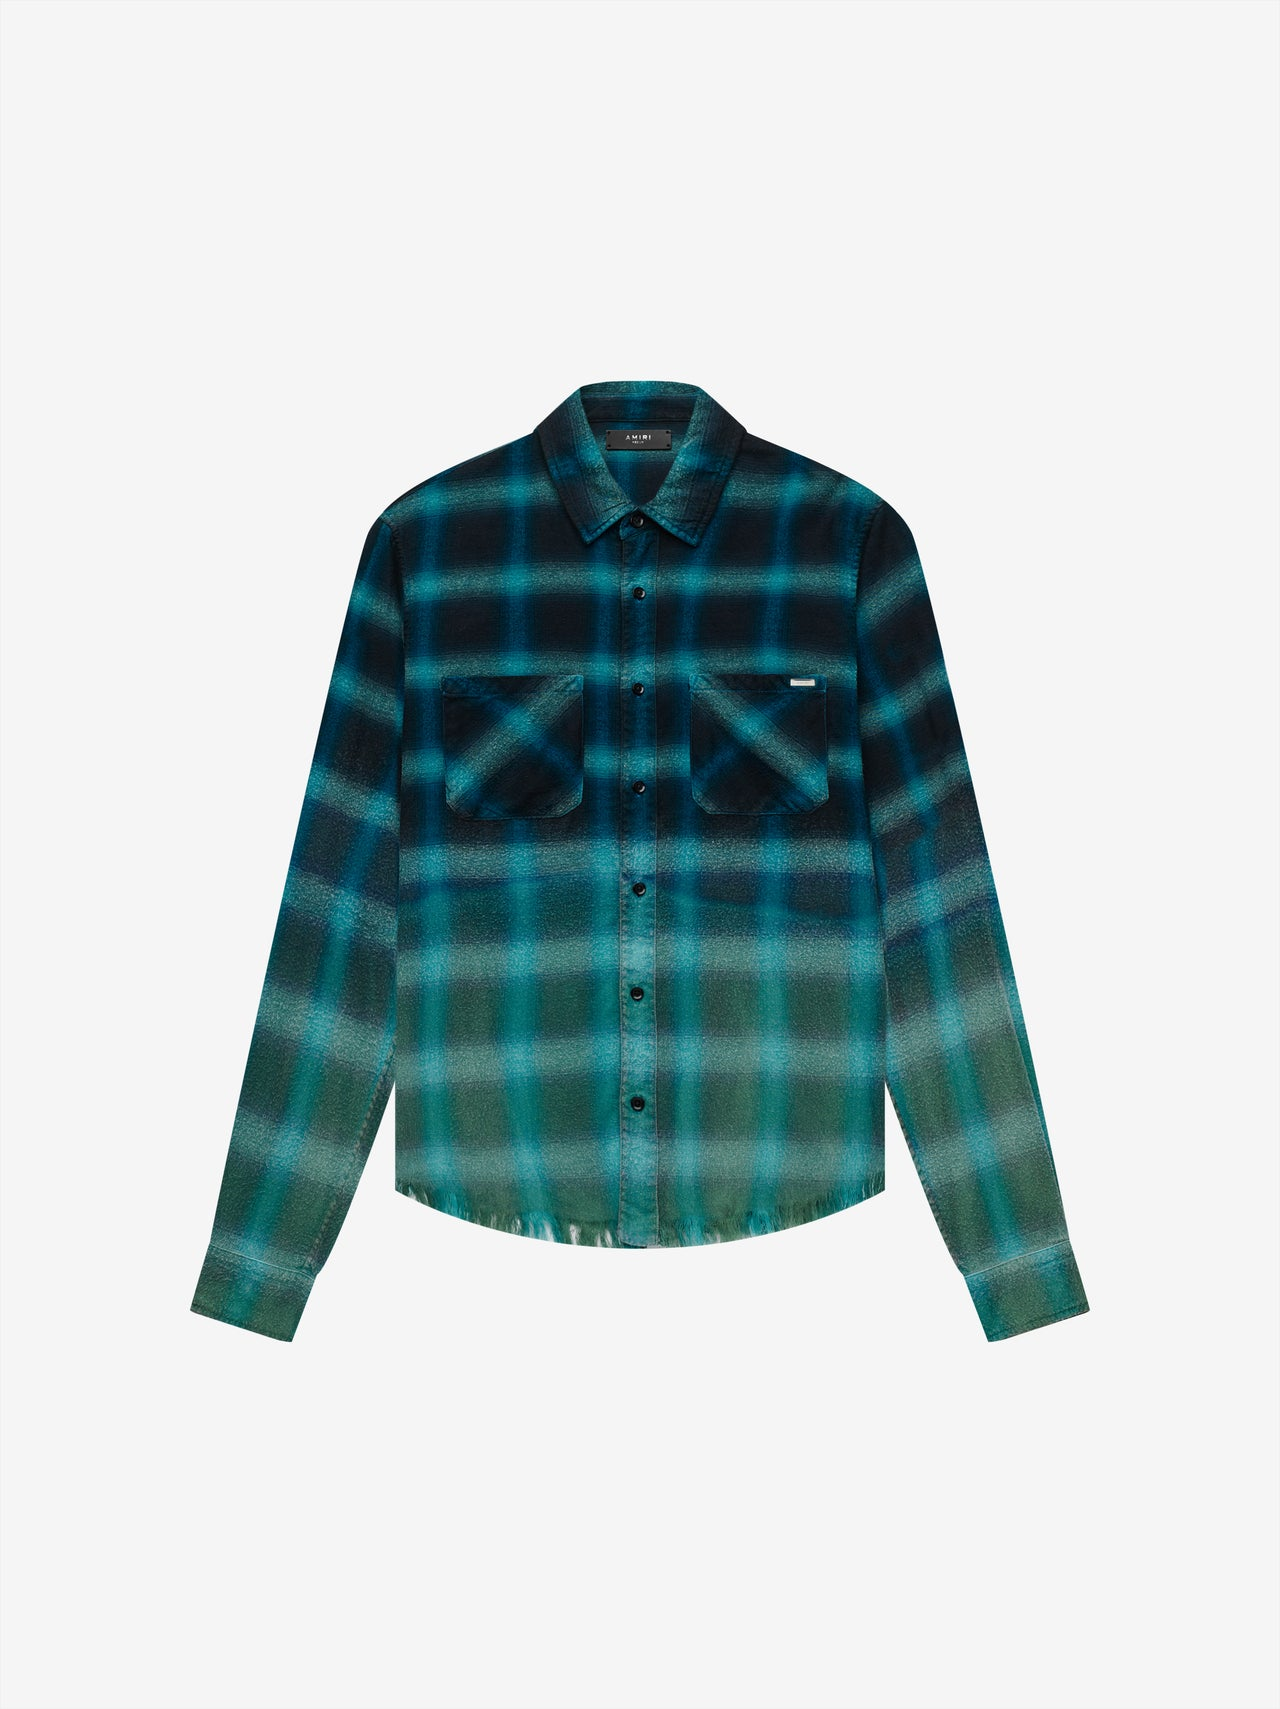 BLEACHED SHADOW PLAID - CYAN